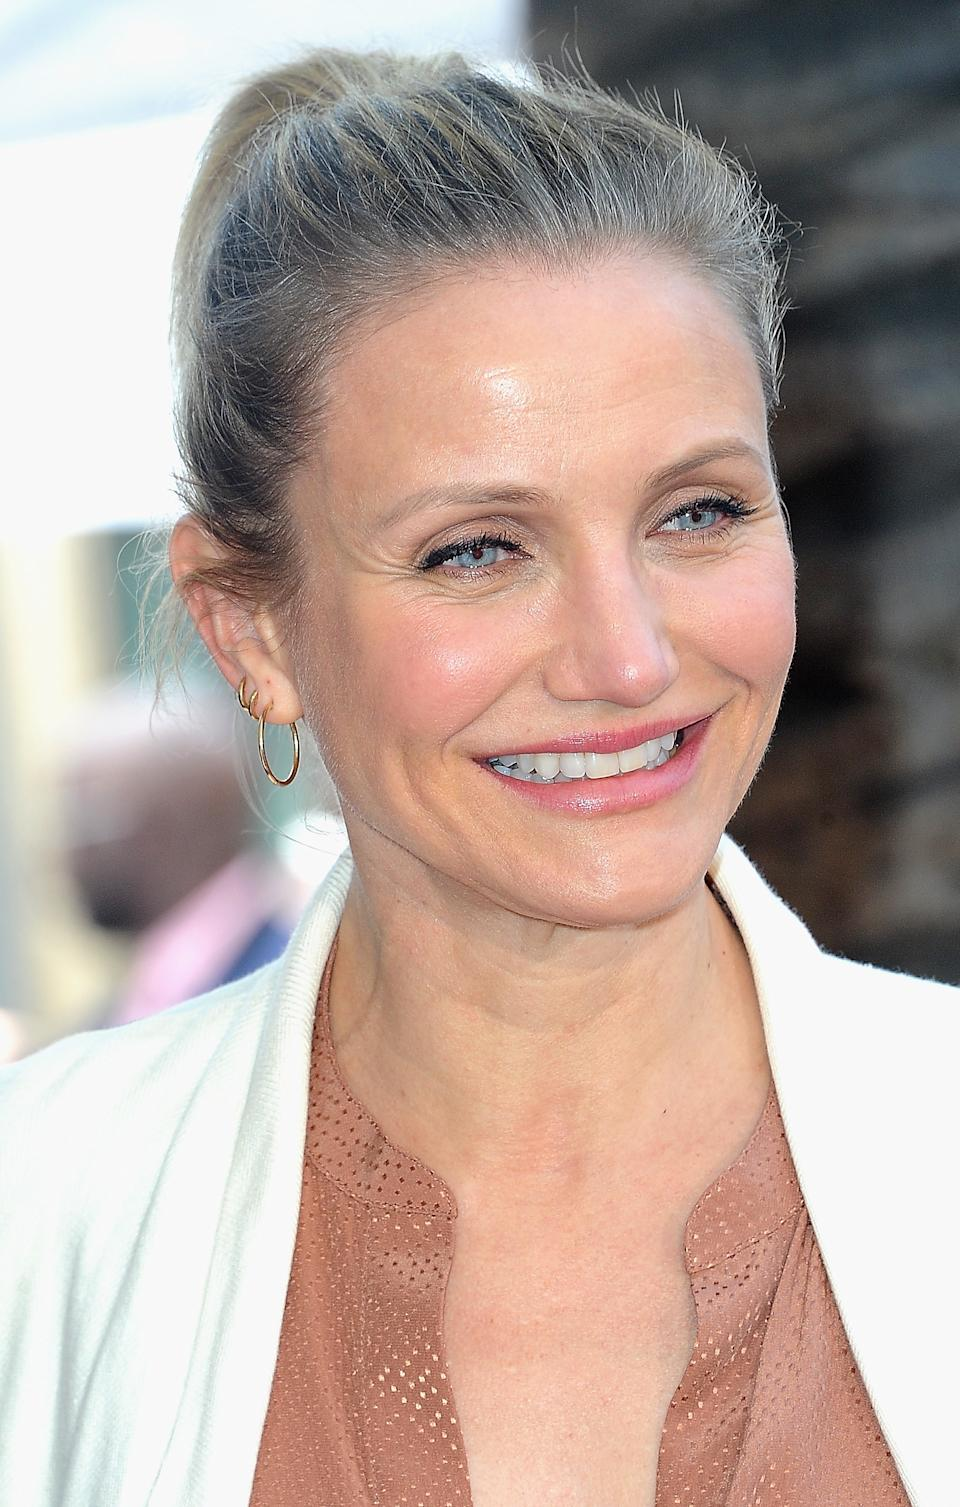 HOLLYWOOD, CA - MAY 01:  Cameron Diaz at Lucy Liu's Star Ceremony On The Hollywood Walk Of Fame held on May 1, 2019 in Hollywood, California.  (Photo by Albert L. Ortega/Getty Images)